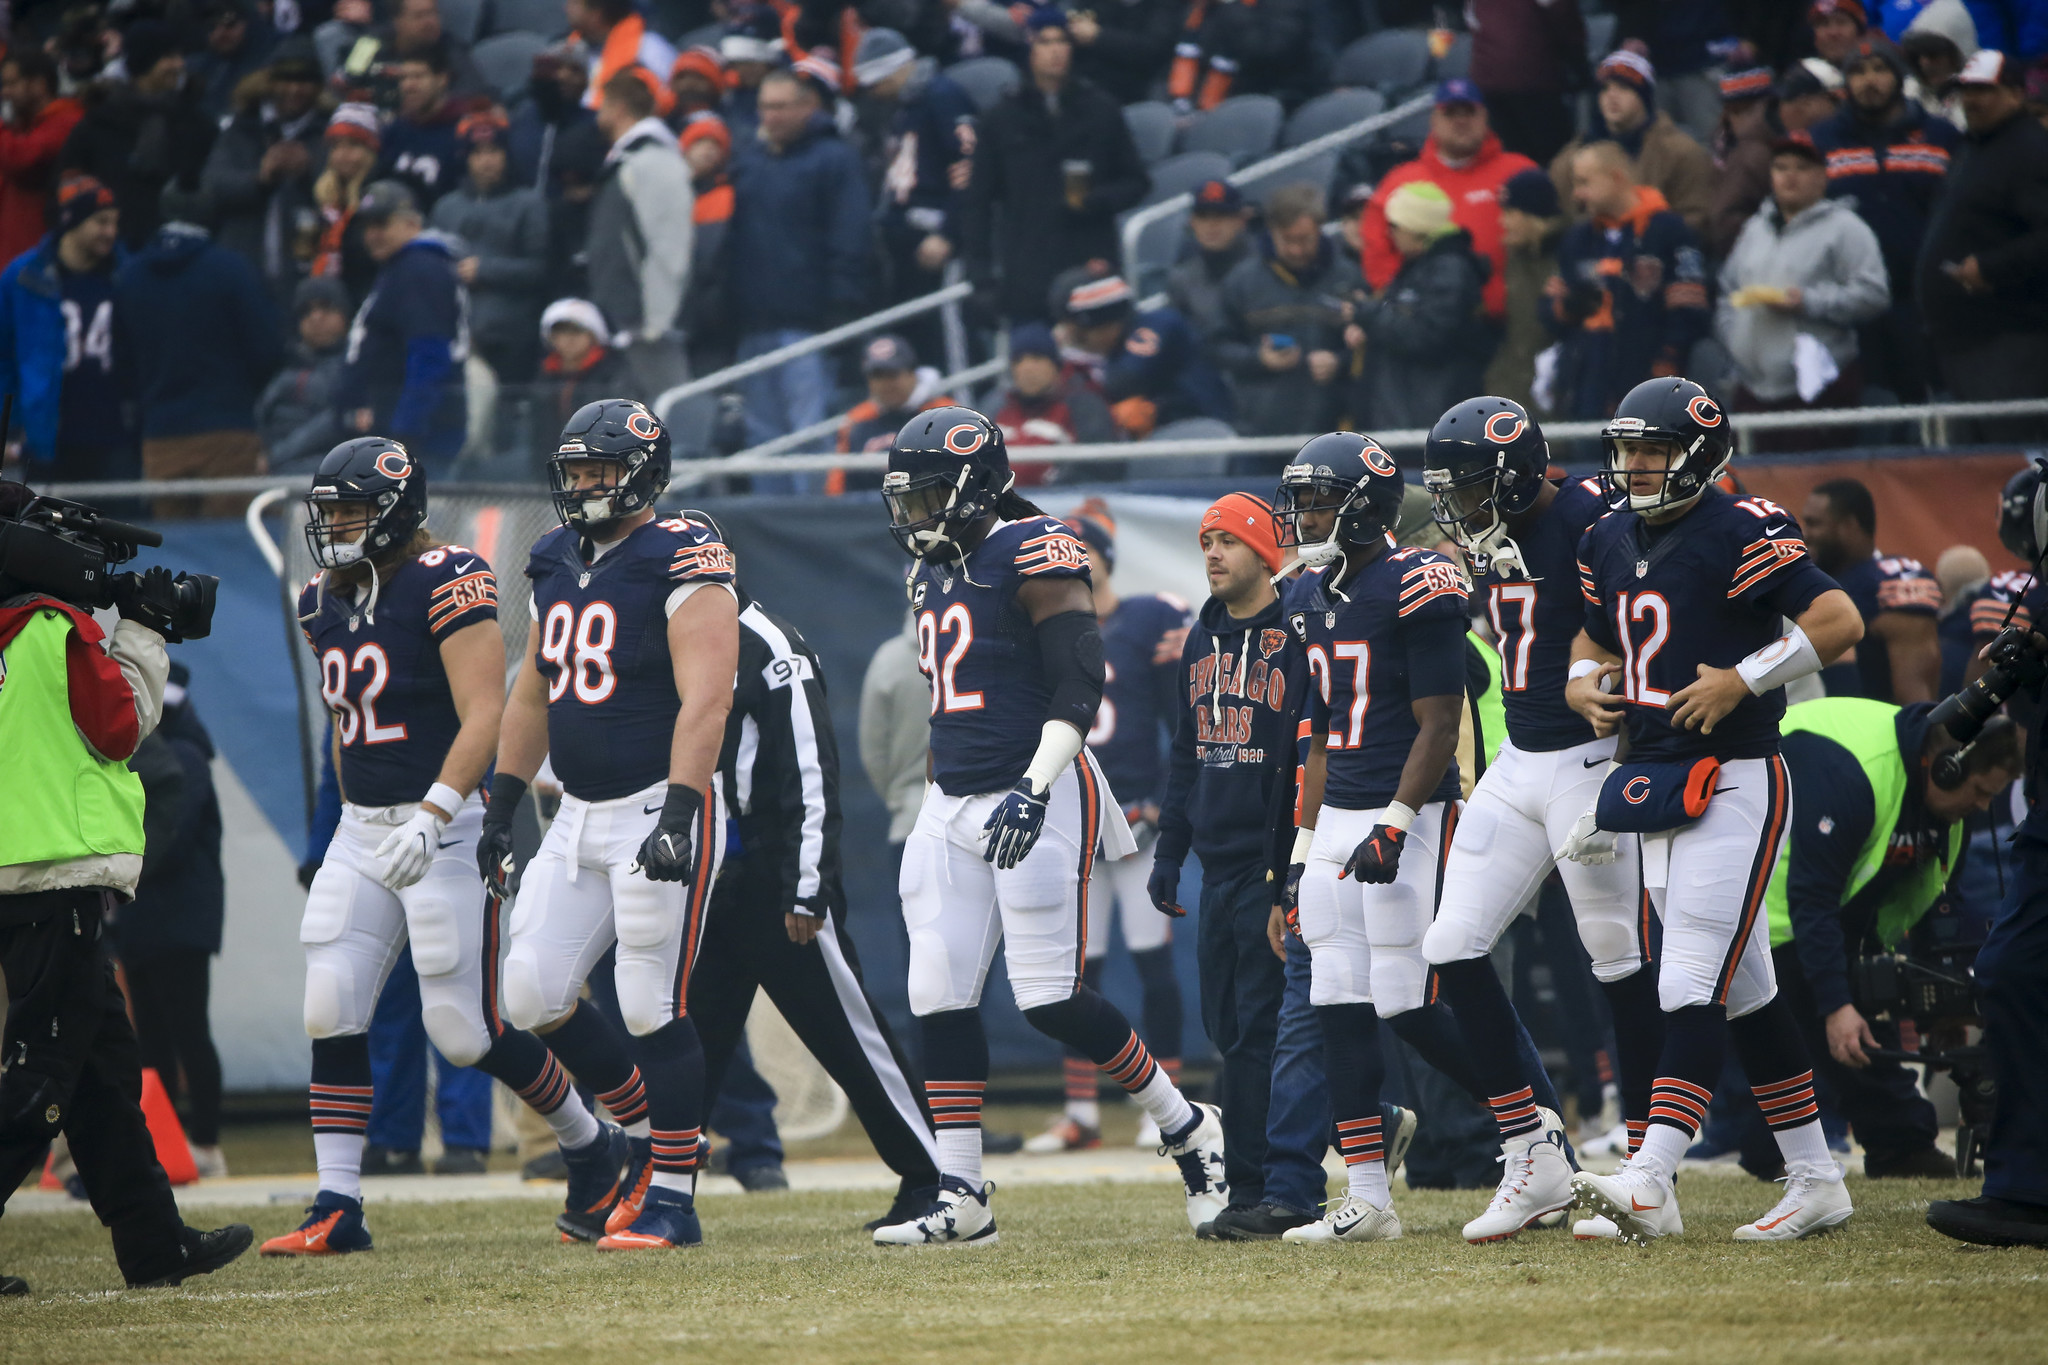 Ct-huddle-up-bears-spt-1231-20161230